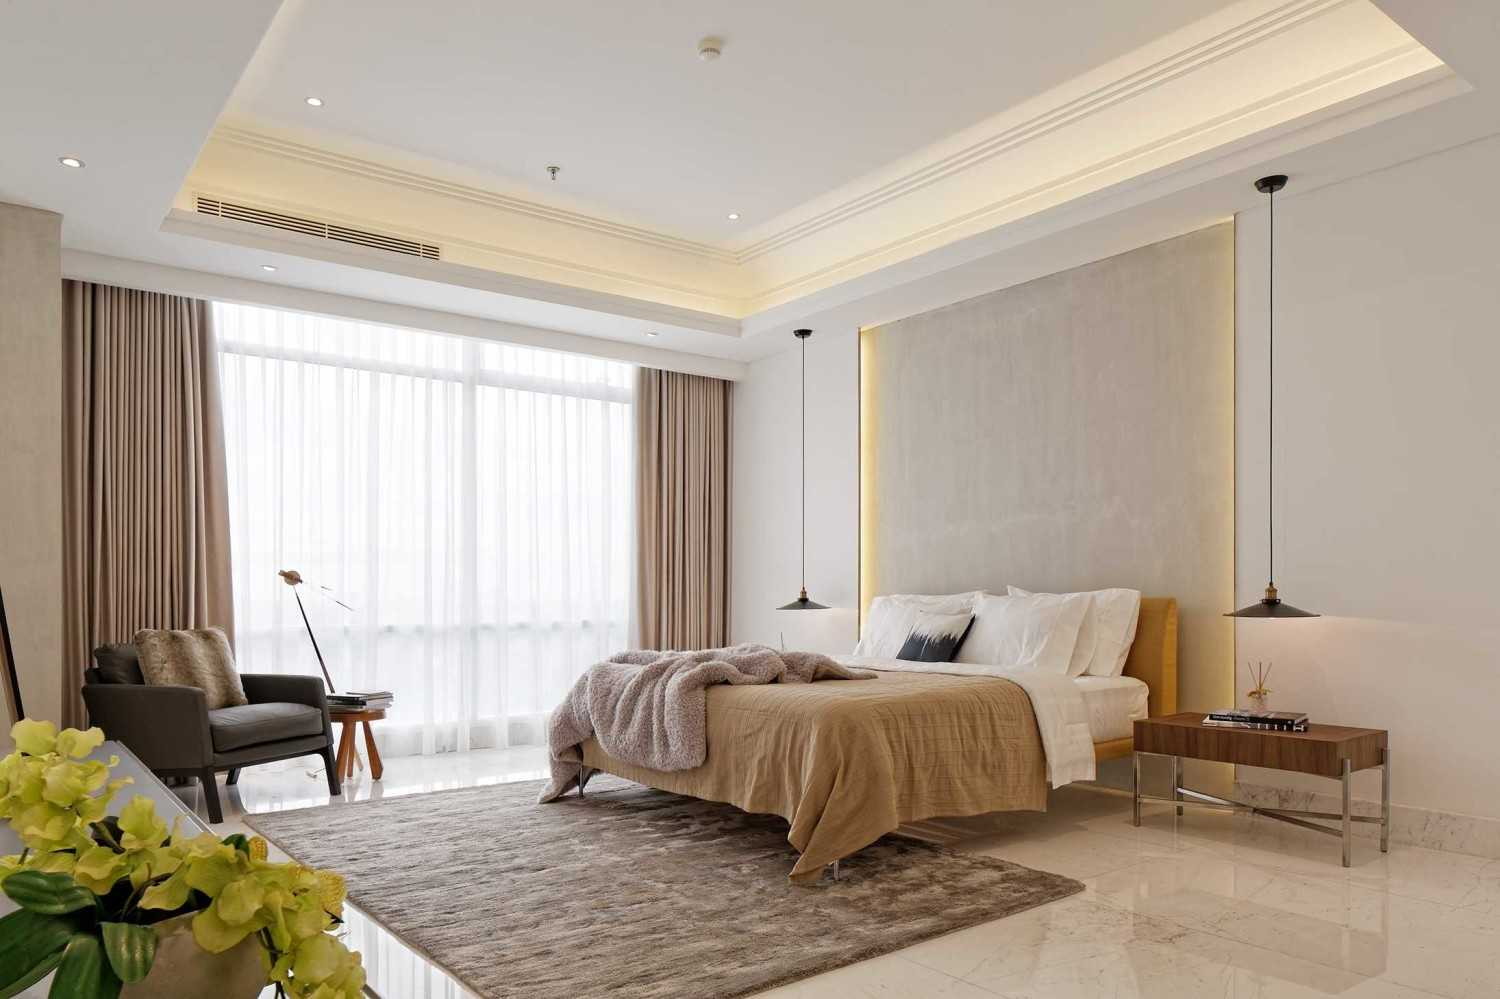 Sontani Partners 11A Residence South Jakarta, Indonesia South Jakarta, Indonesia Master Bedroom Kontemporer,industrial,wood,modern 21402